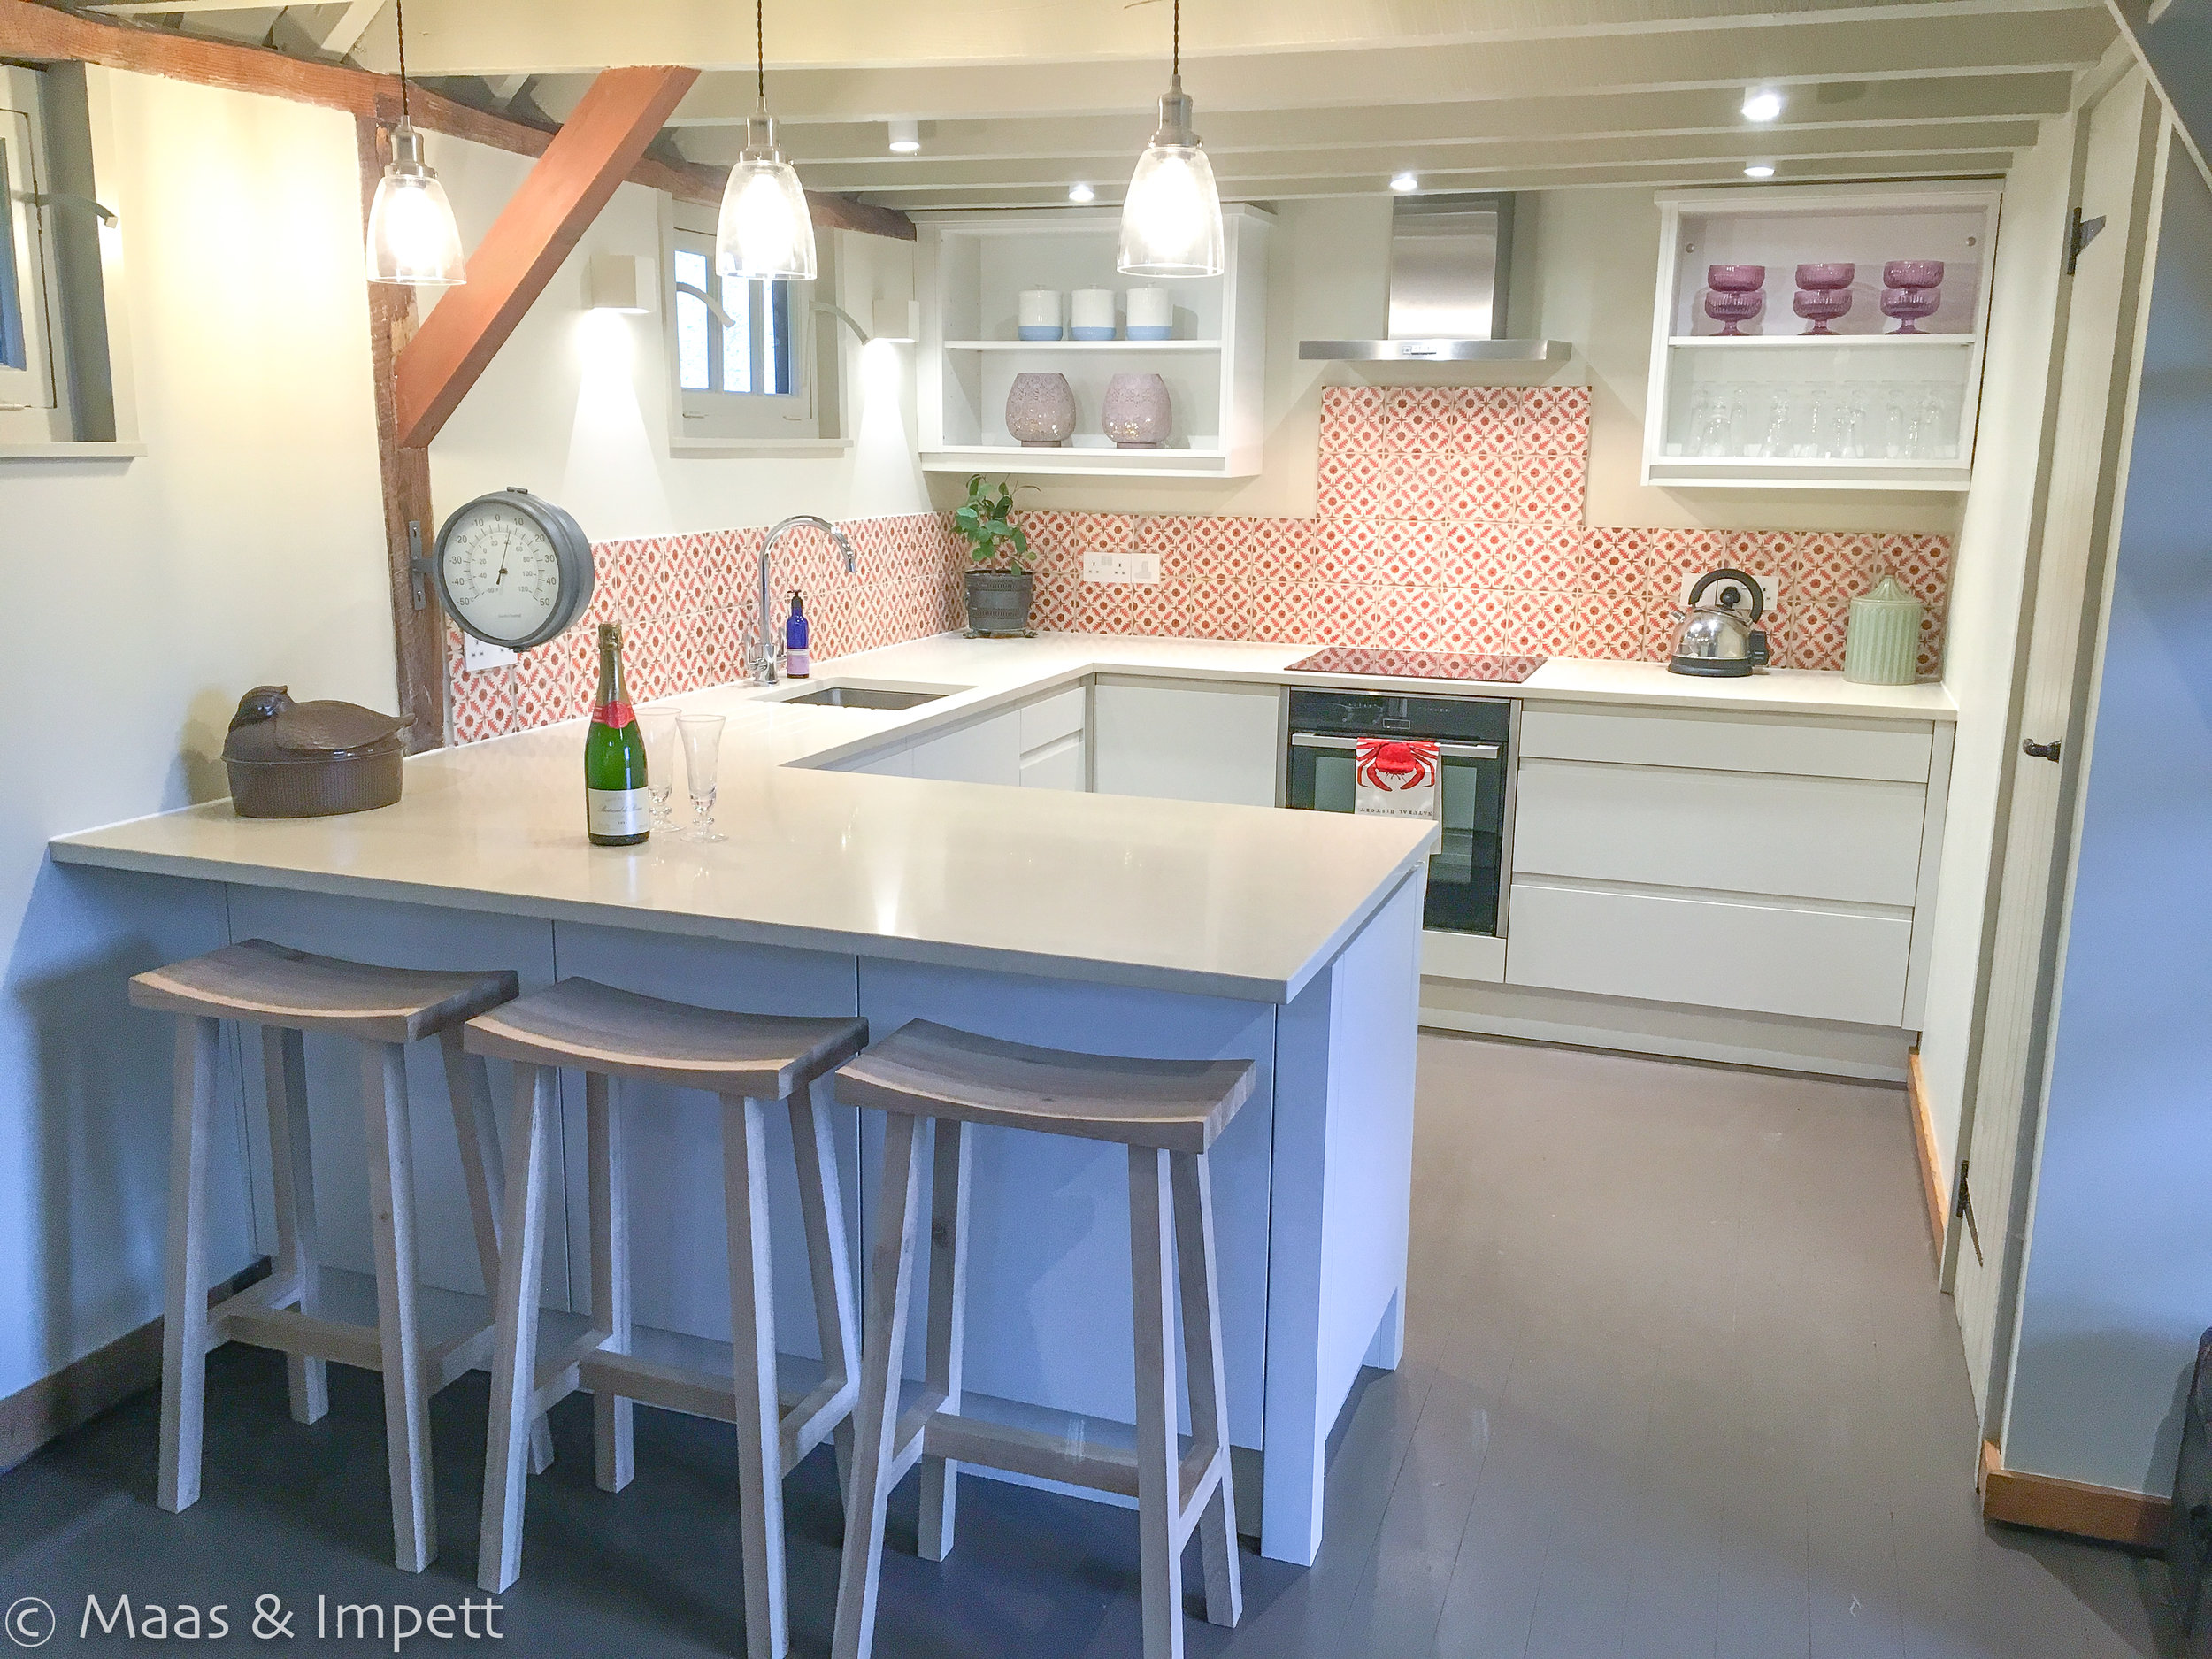 Bespoke Kitchen carpentery by Raynsford and stunning tiles sourced from Fired Earth. Bar Stools to compliment the clean lines, Garden Trading.